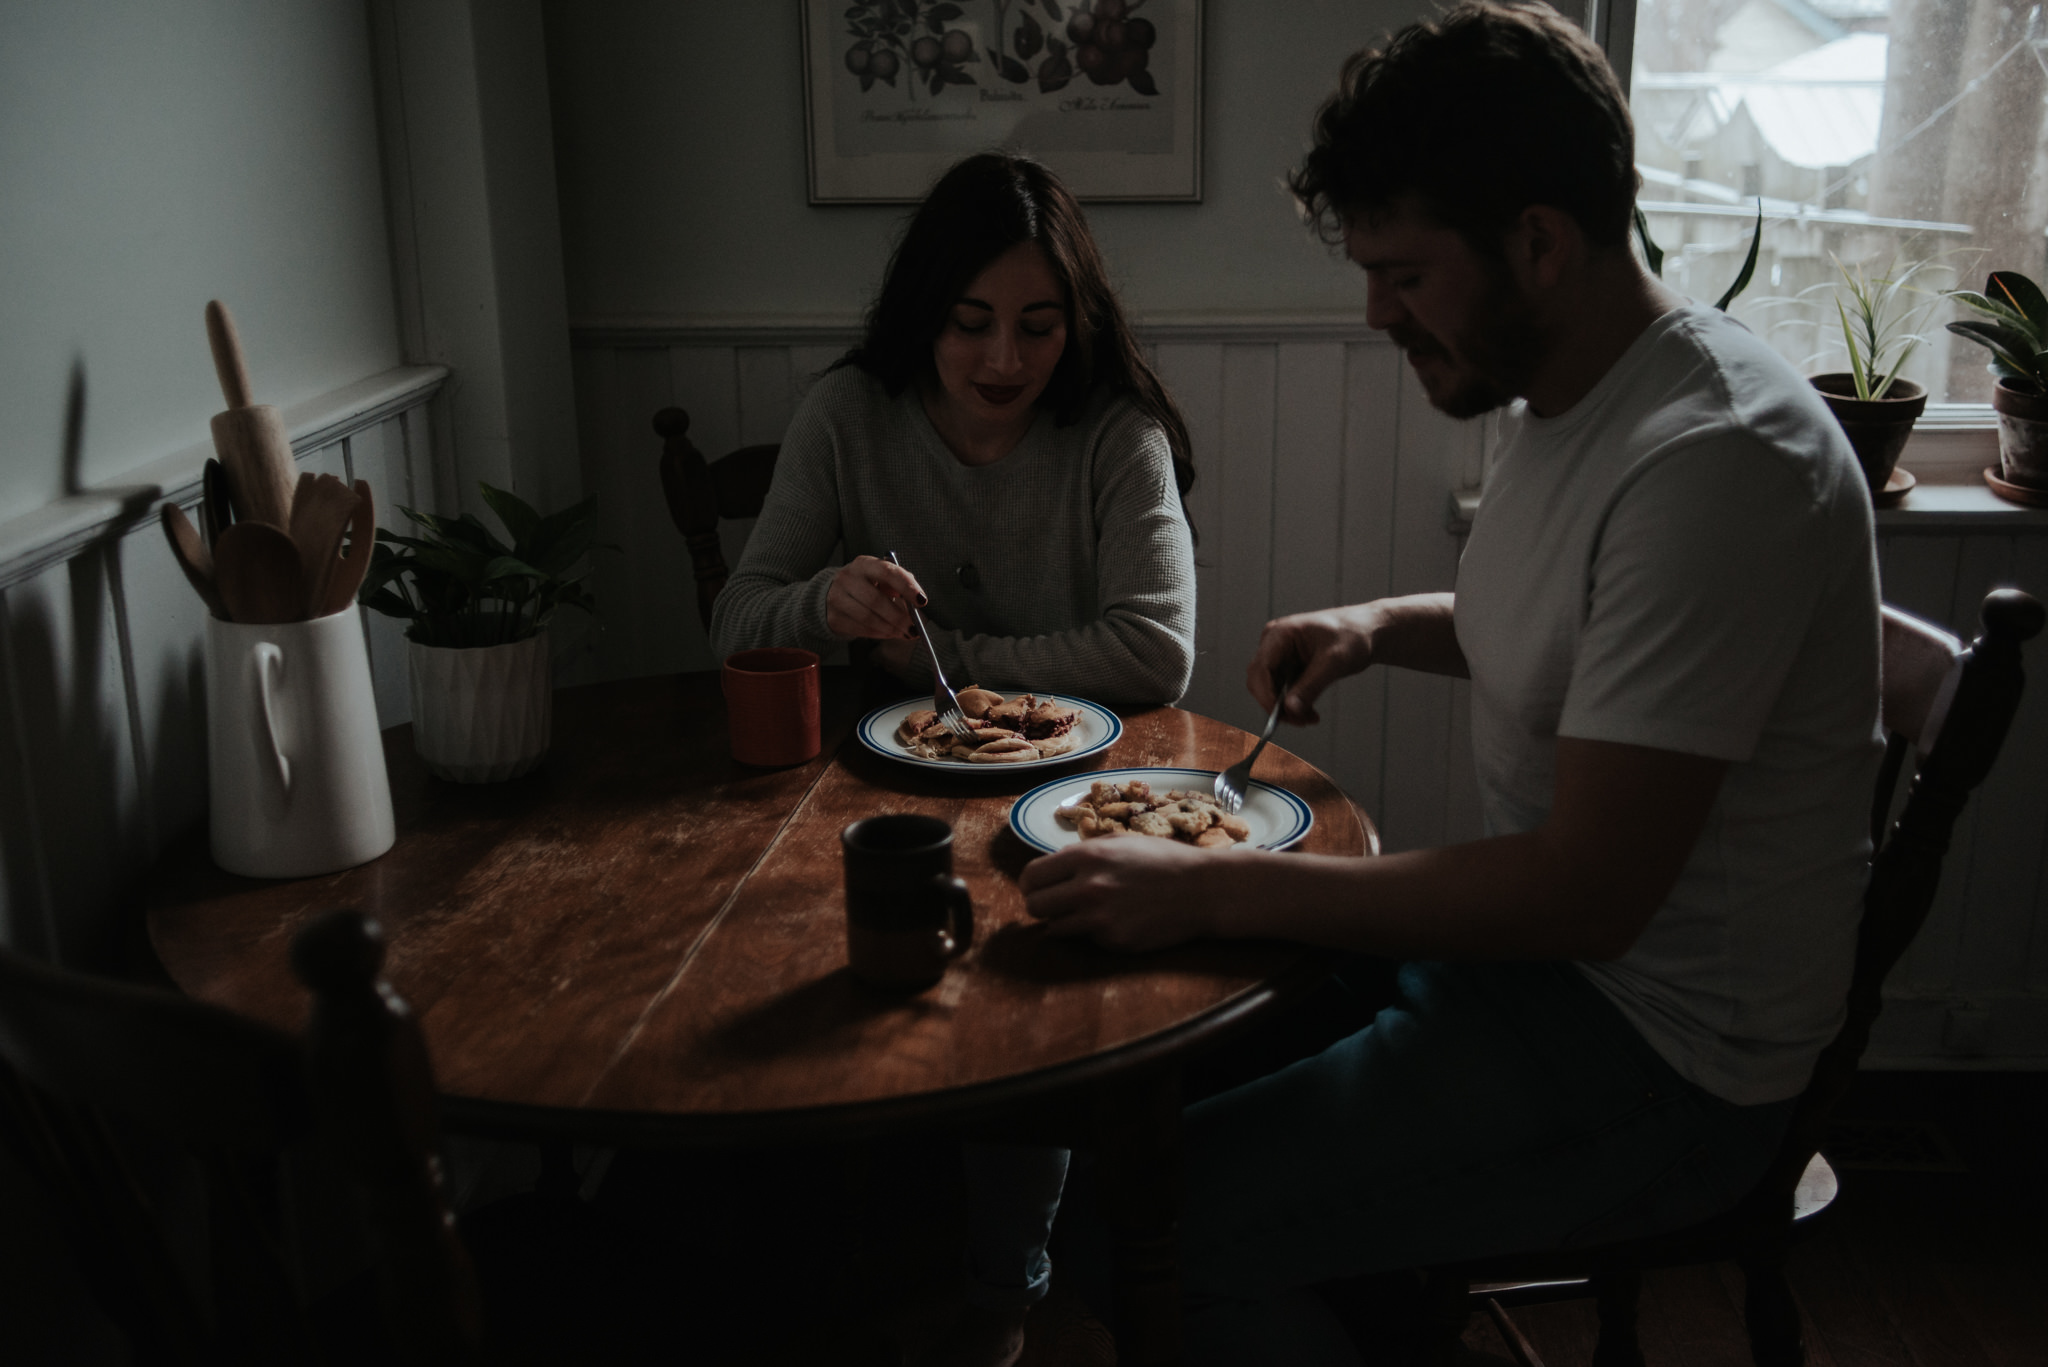 This Intimate In Home Engagement will make you want to cook up some pancakes for breakfast, cozy up by the fire and then hop in the bath tub while he reads to you and washes your hair // Photographed by Toronto Wedding Photographer Daring Wanderer